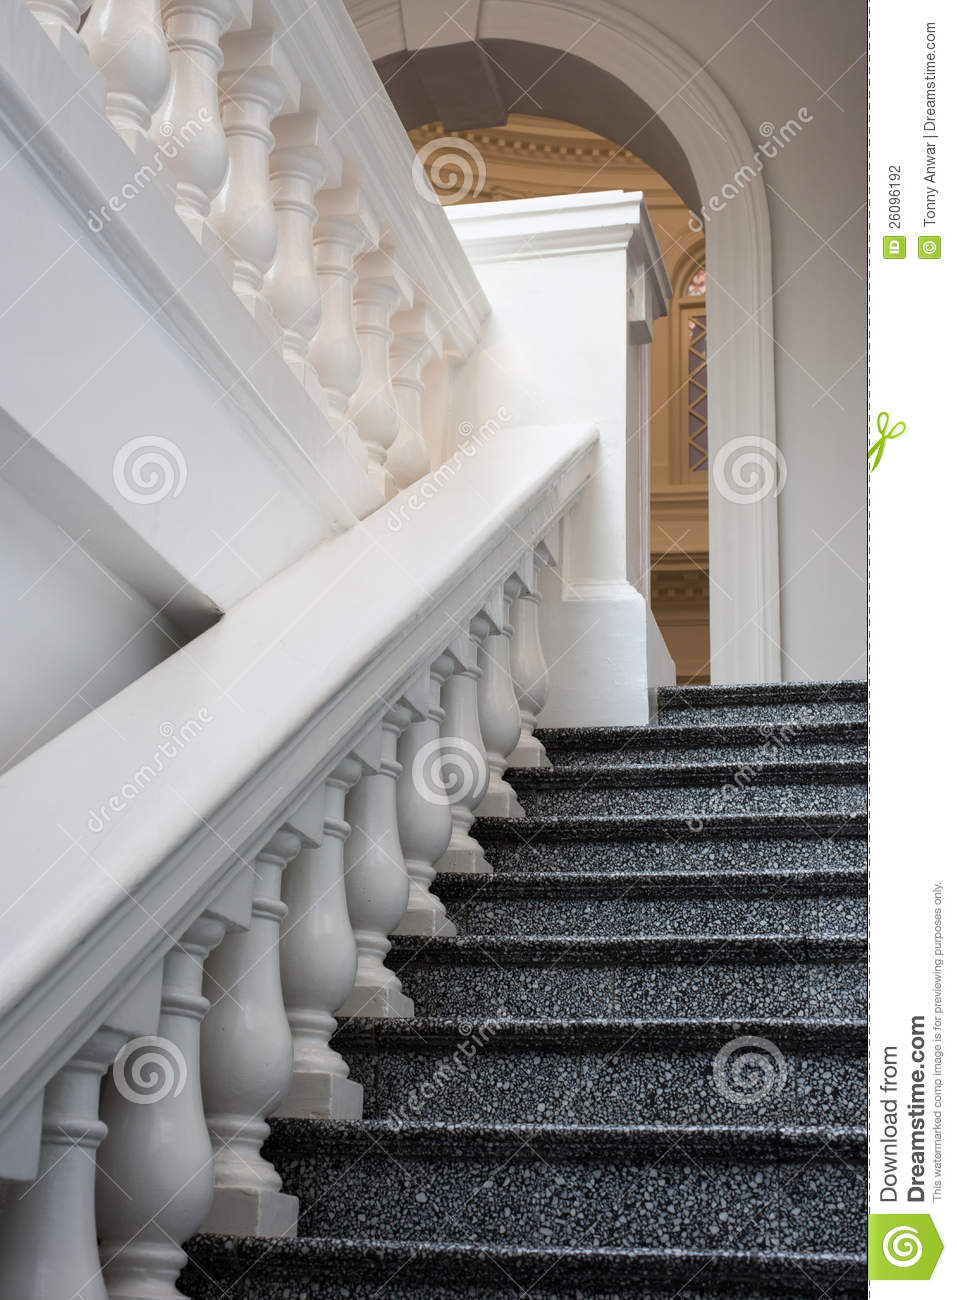 Marble Steps And Railing Stock Photo Image Of Safety